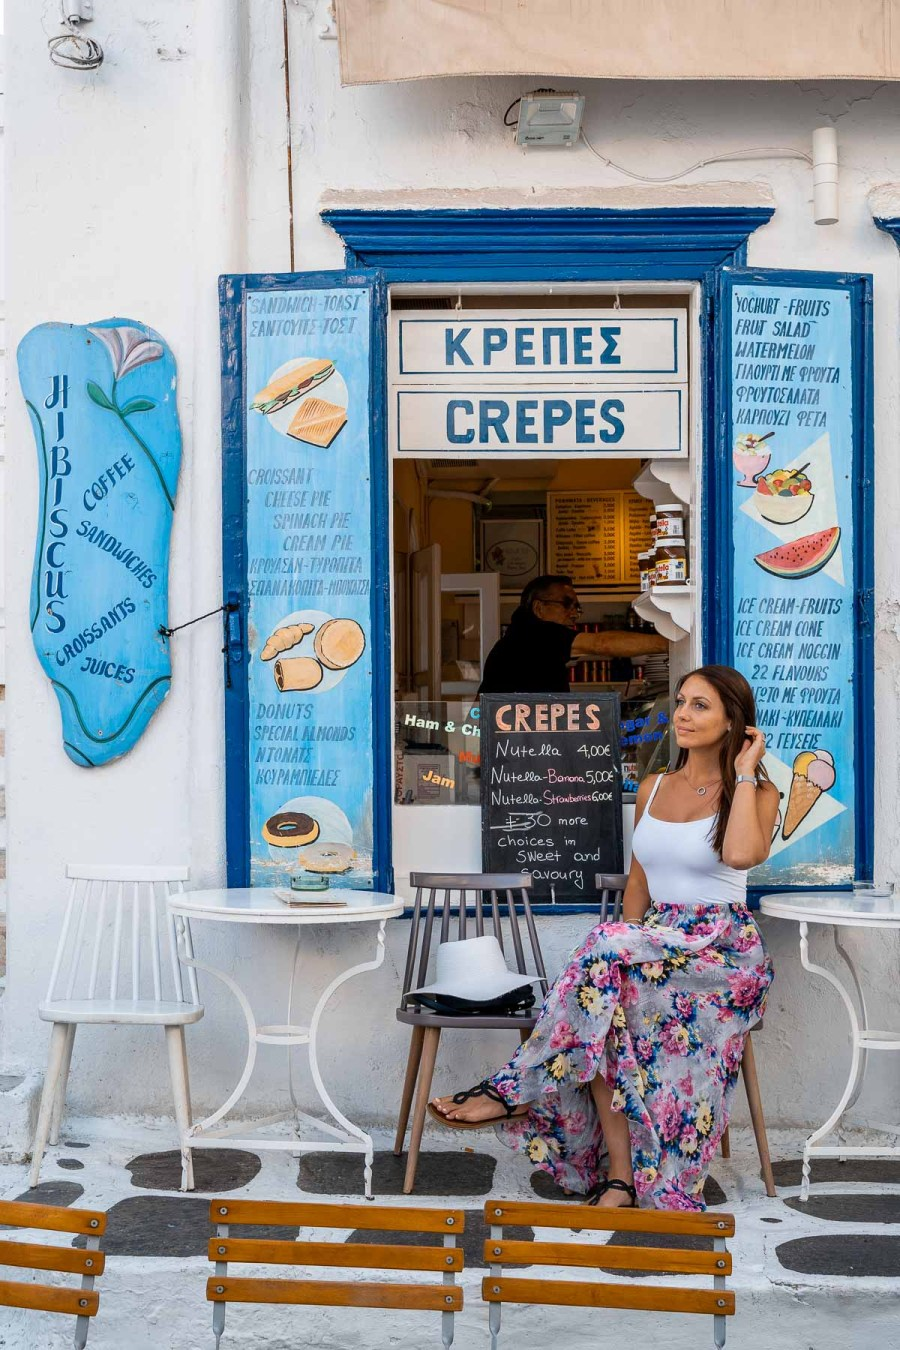 Girl in a purple floral dress sitting in front of the Hibiscus Fruit Parlor in Mykonos